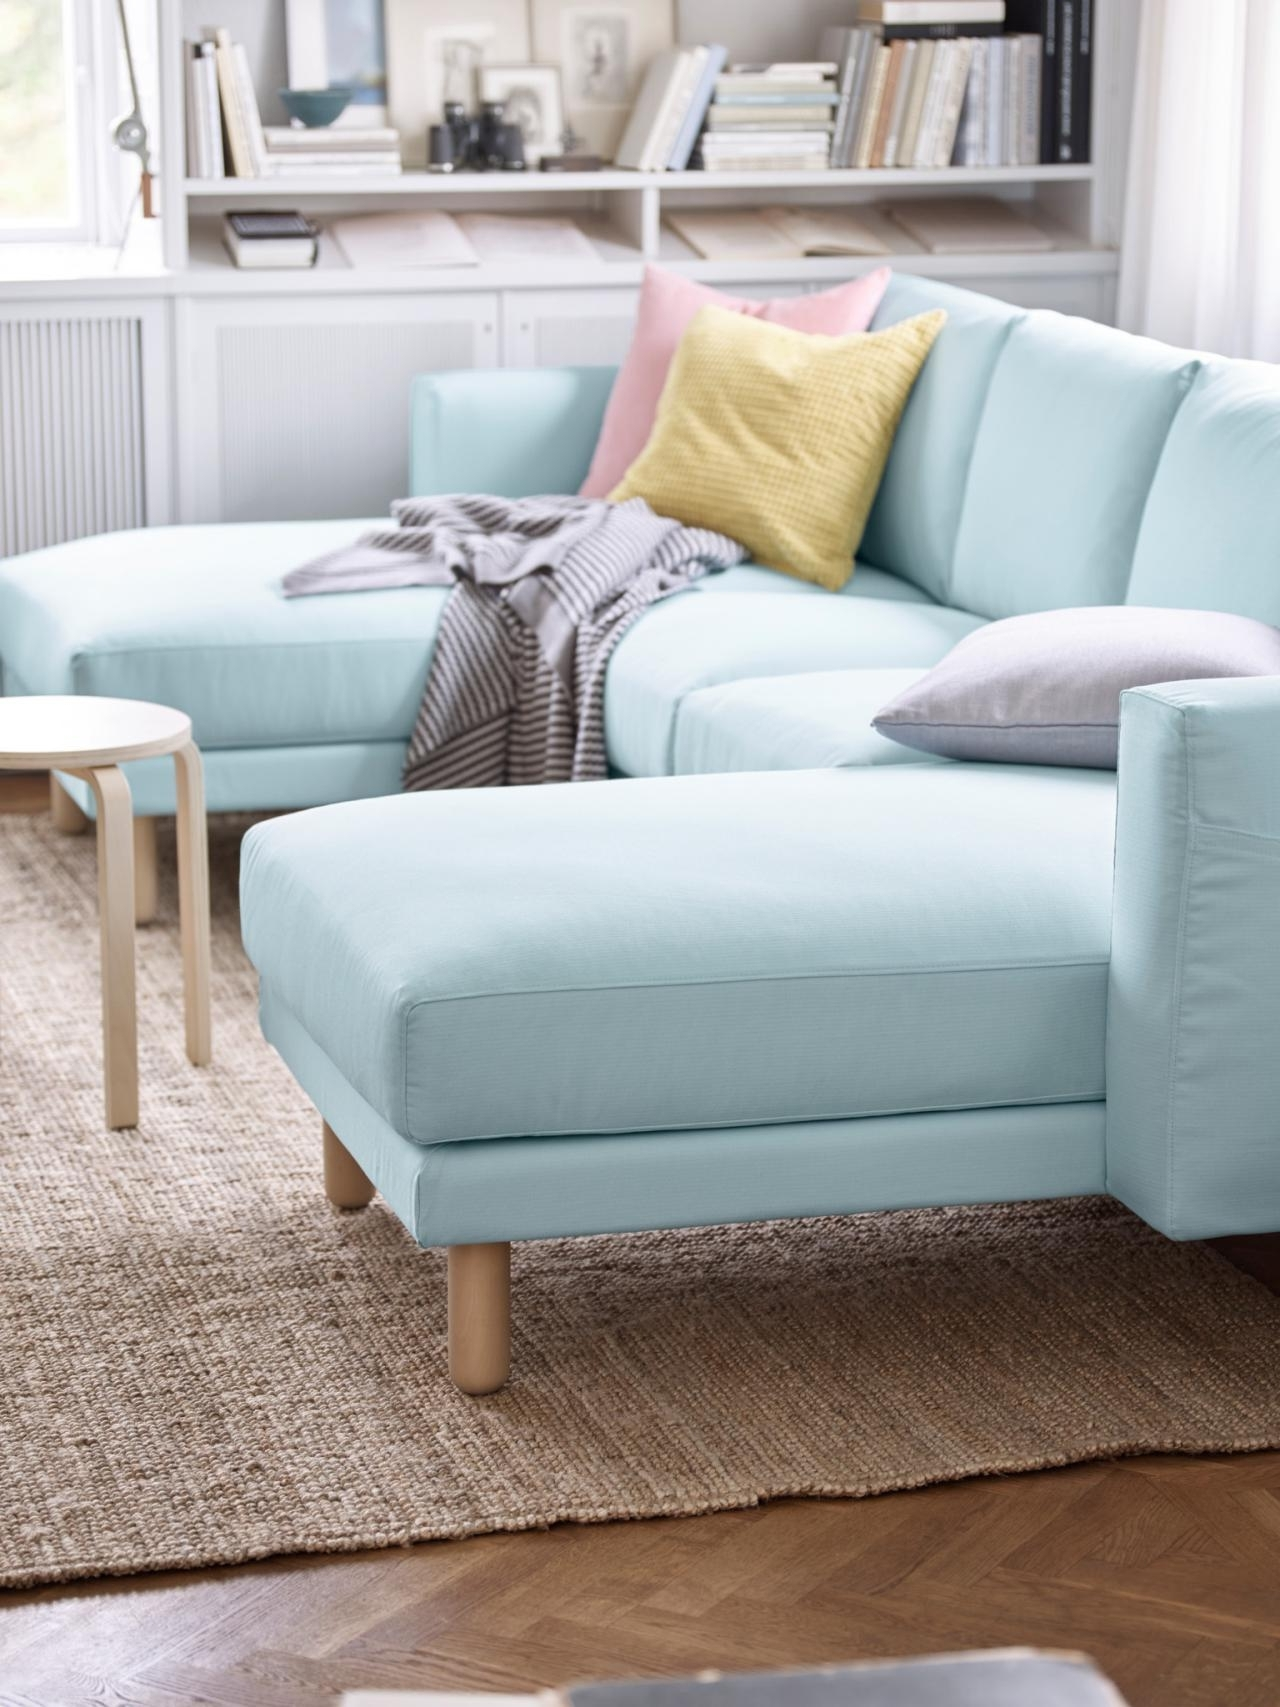 5 Apartment Sized Sofas That Are Lifesavers (View 2 of 15)